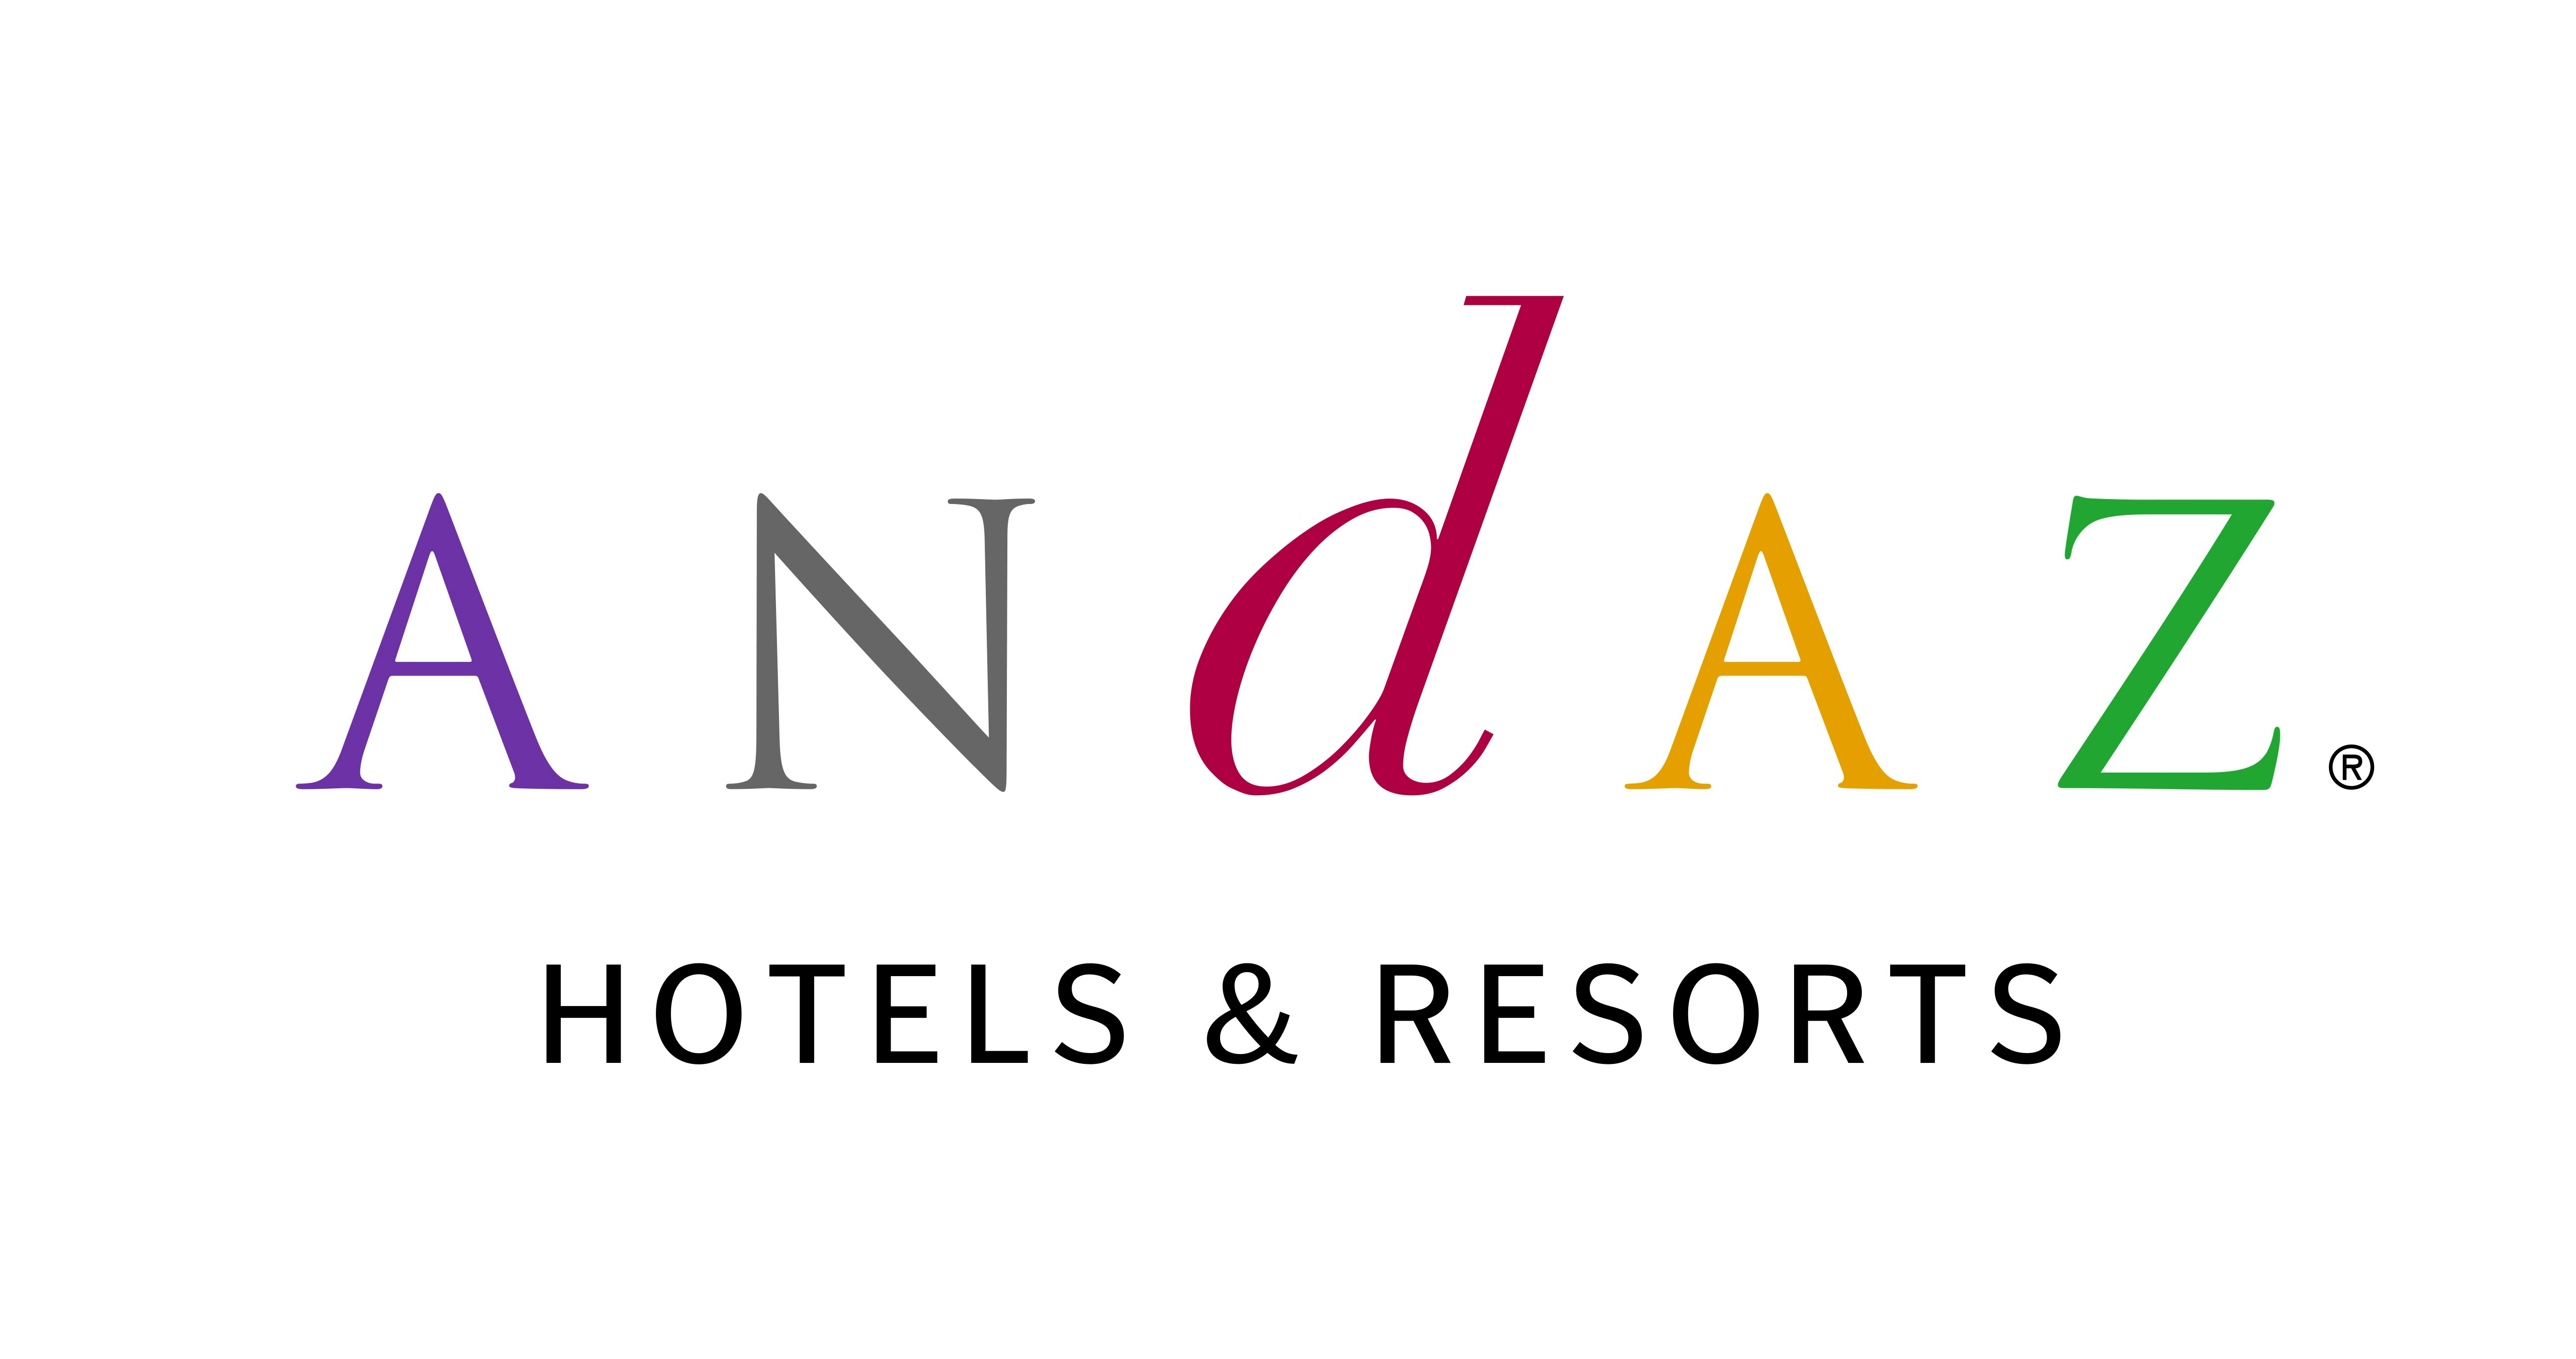 ANDZ_L001b-HotelsAndResorts-R-color-CMYK